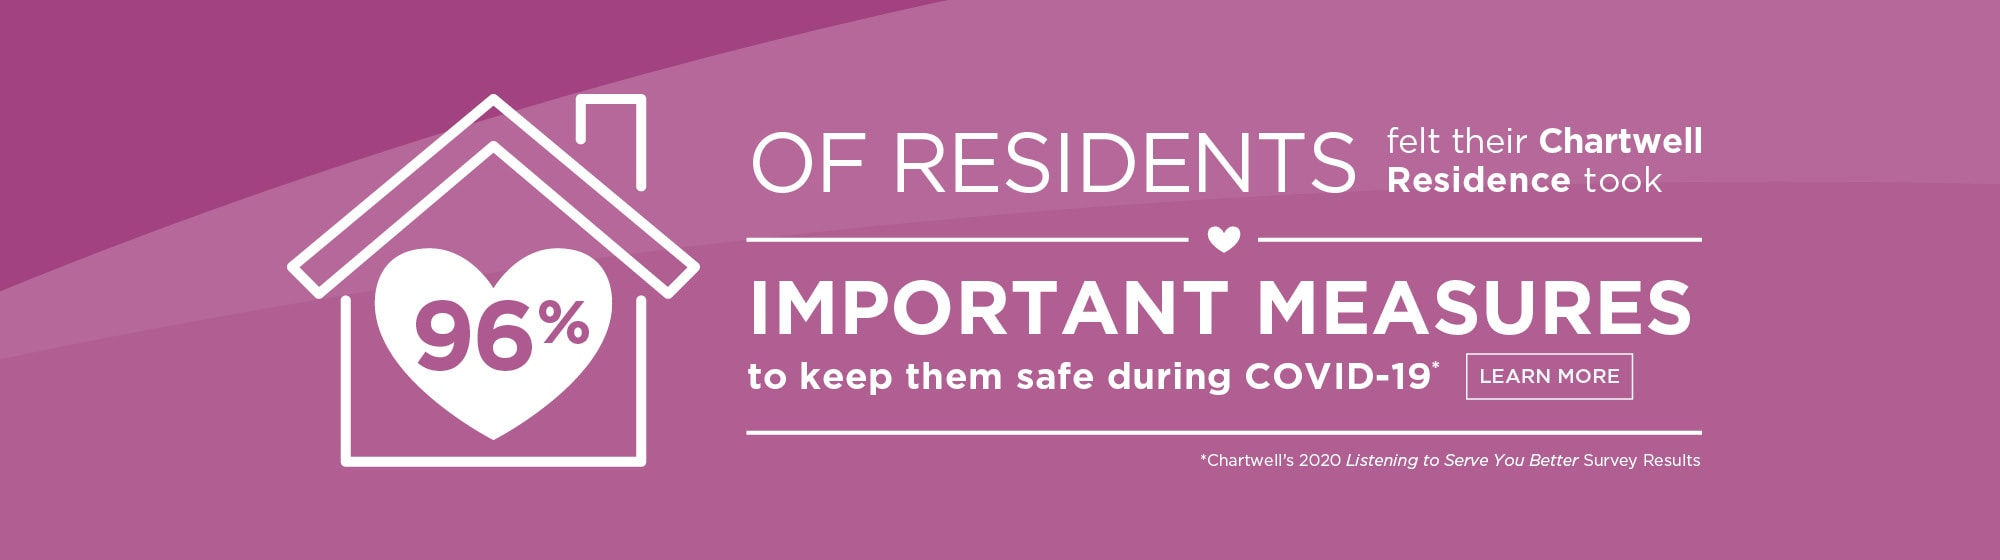 96% of residents felt their Chartwell residence took important measures to keep them safe during COVID-19.